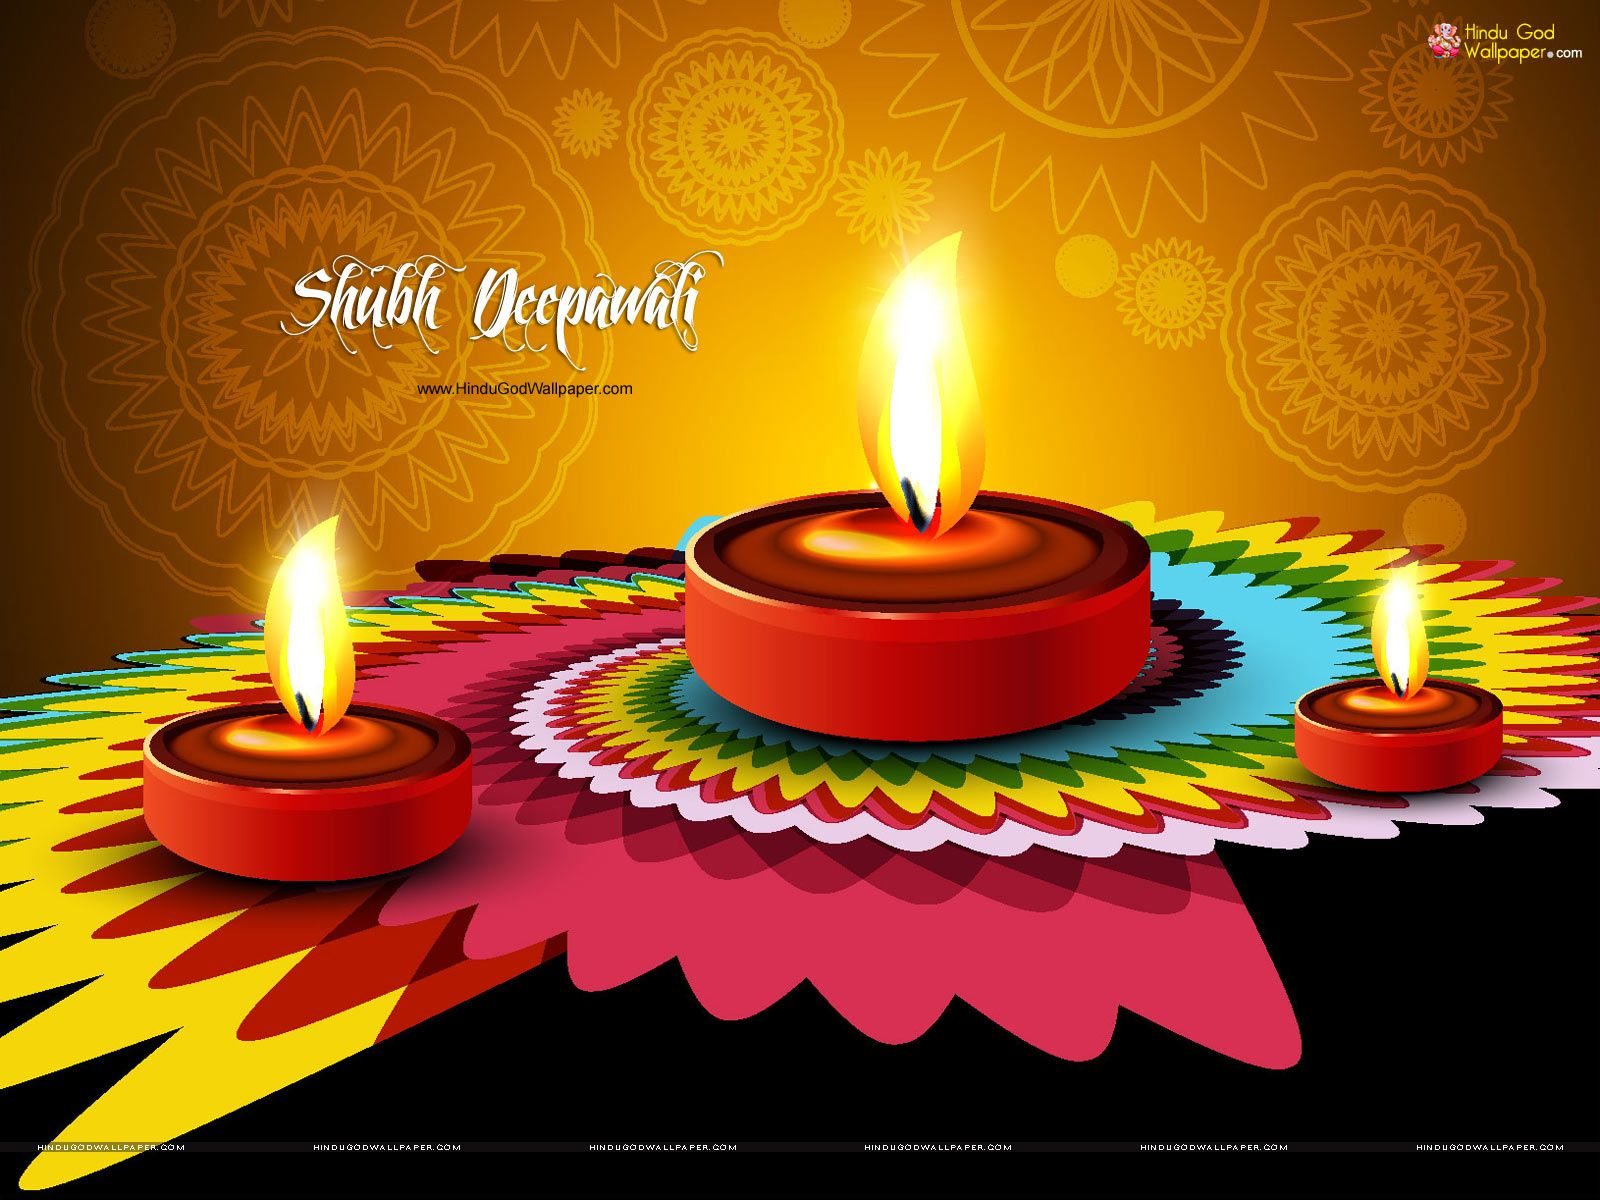 Diwali Wallpaper 2016: Download Free Latest HD Diwali